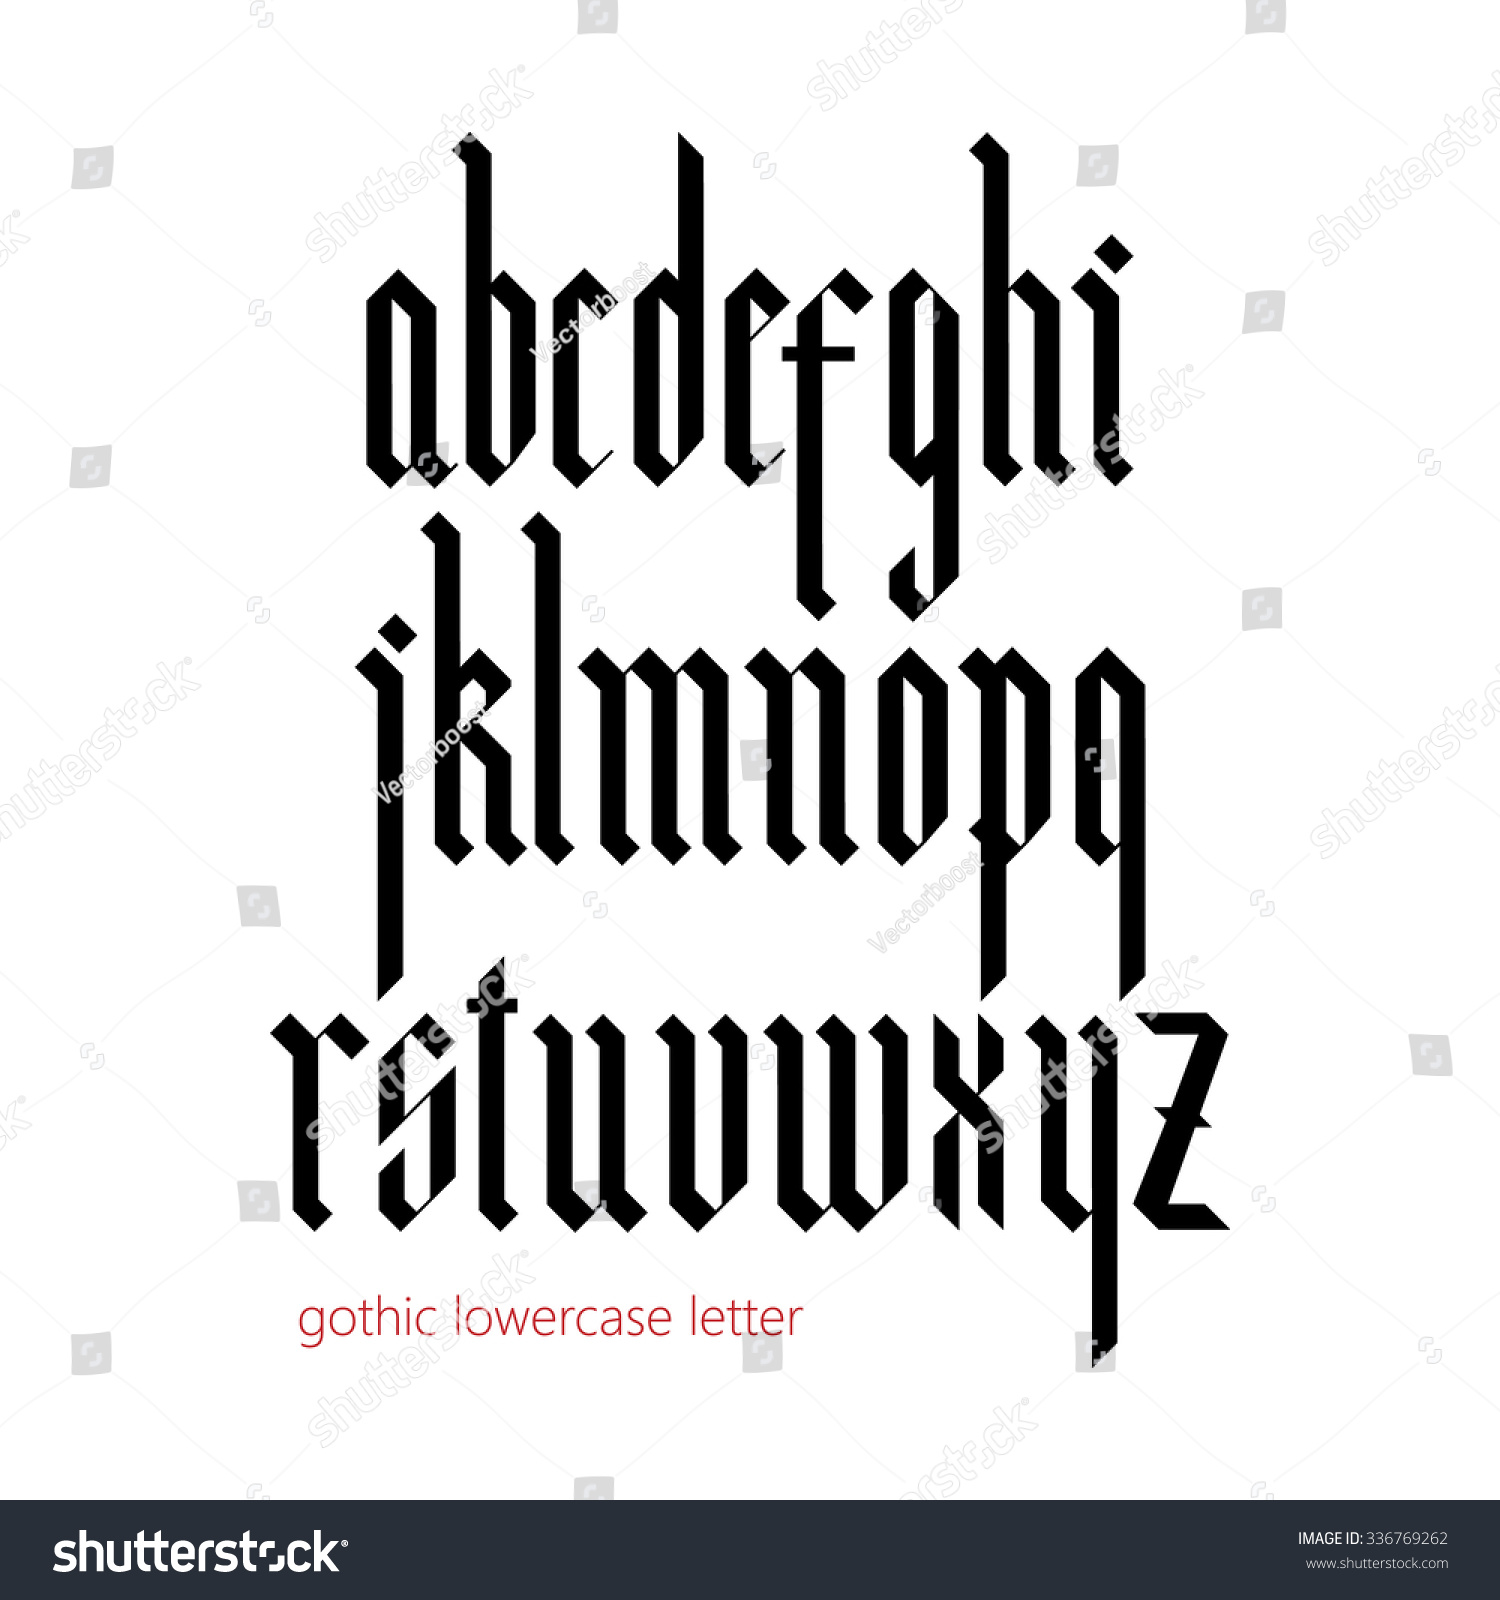 how to make all font lowercase